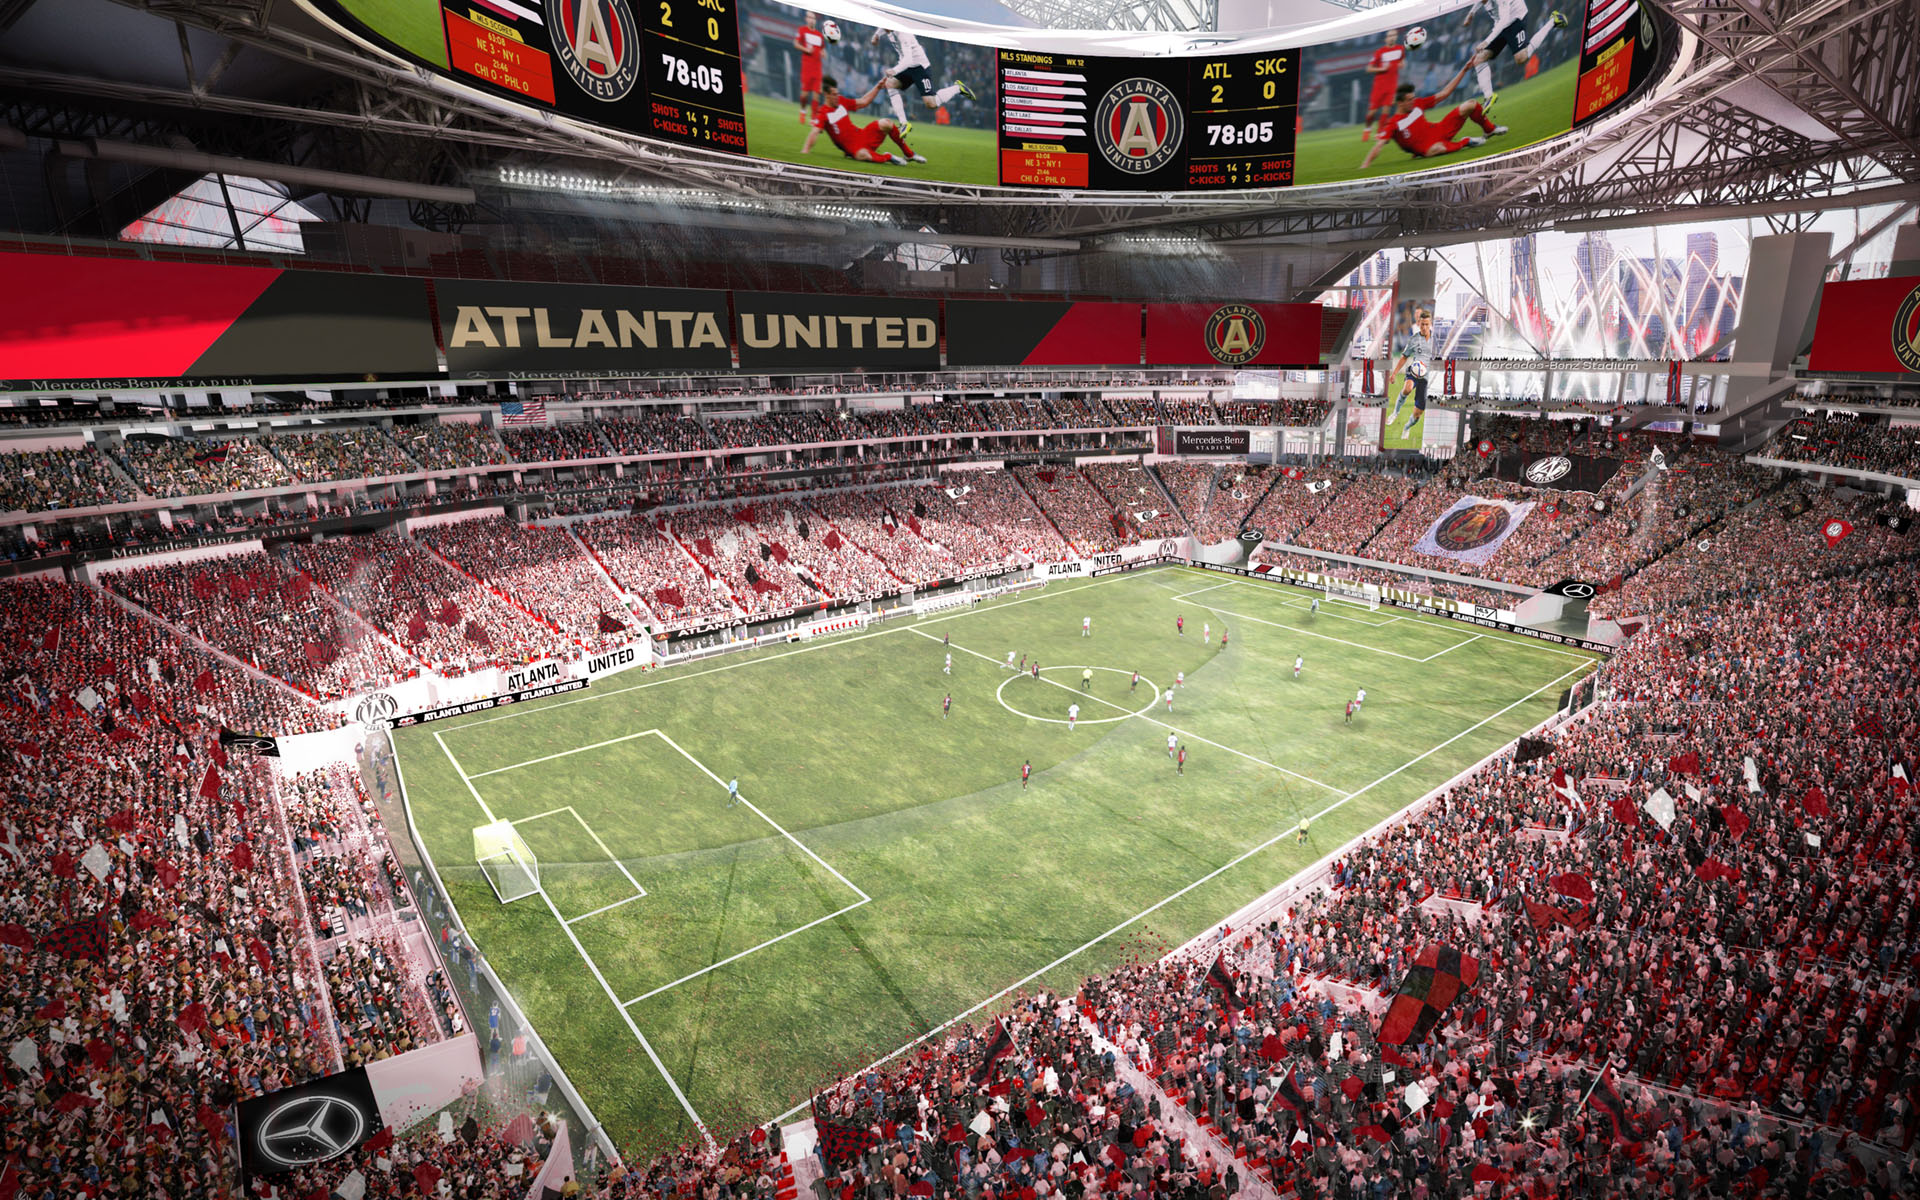 Action Packed Weekend of Major League Soccer Ahead as Atlanta United Wrap up the Sunday Roster, FC Dallas at Home in Major Clash, Orlando City Looking to Upset DC United